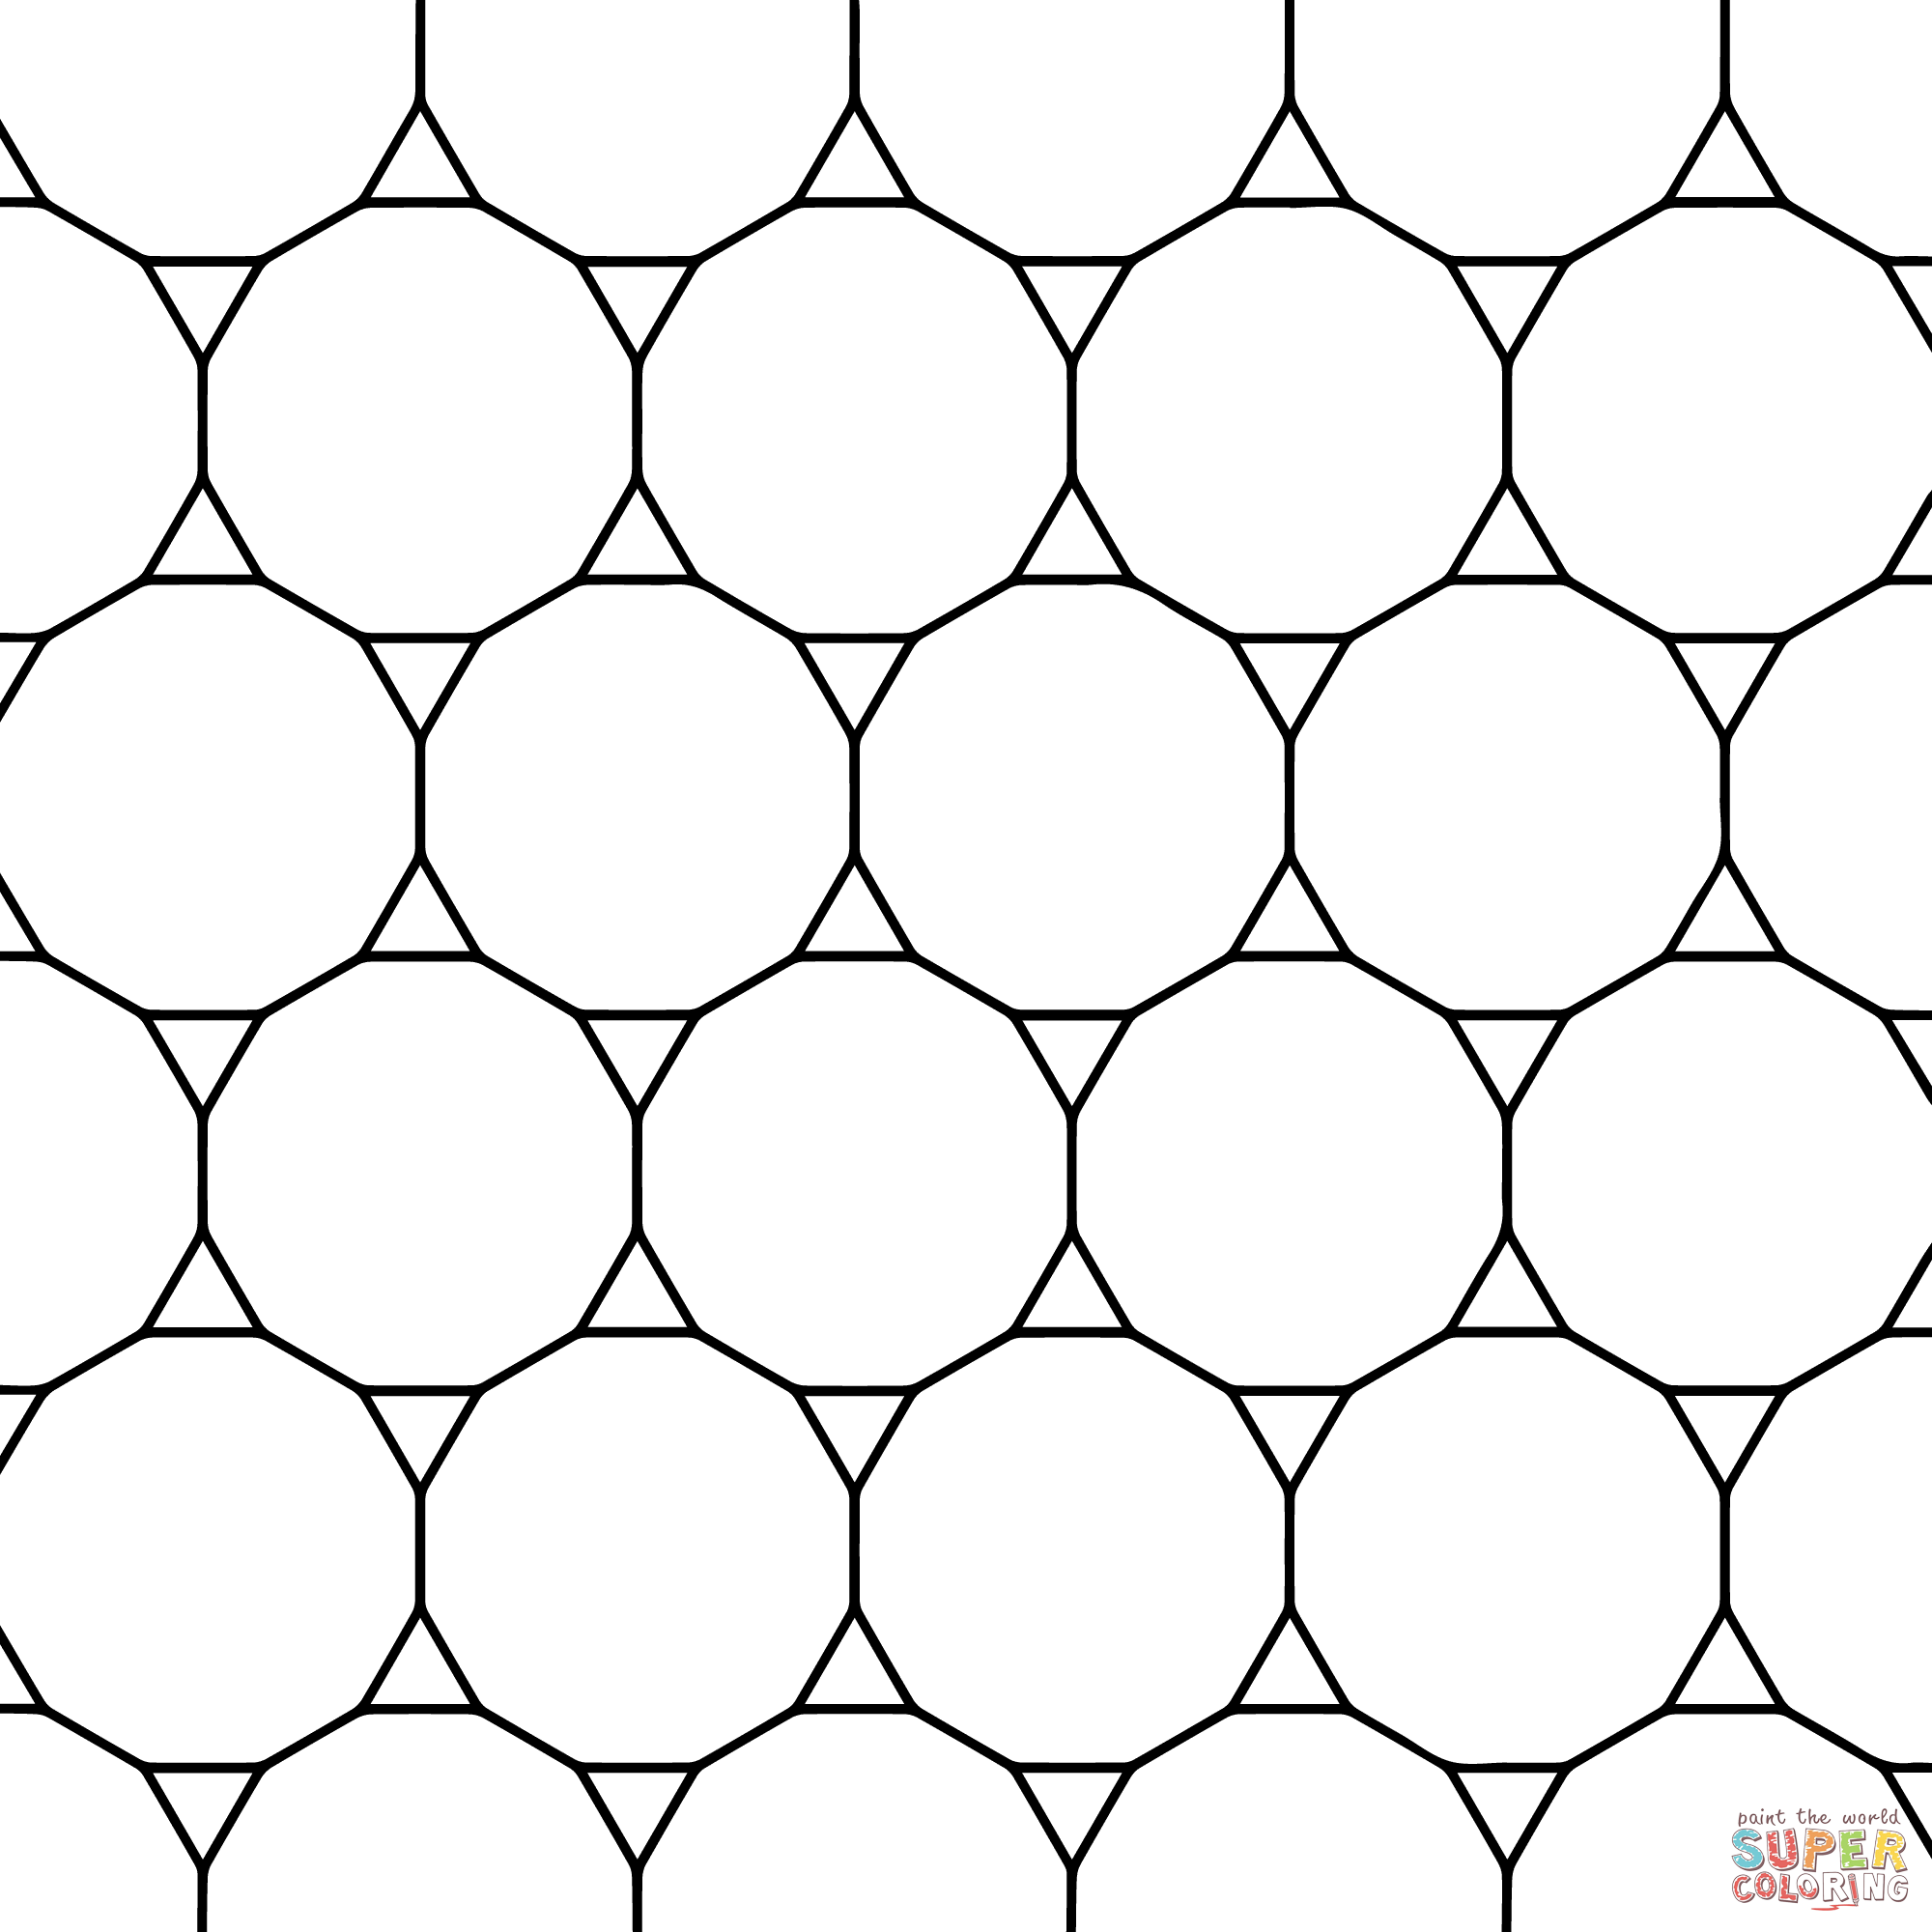 Tessellation Worksheet Grade 2